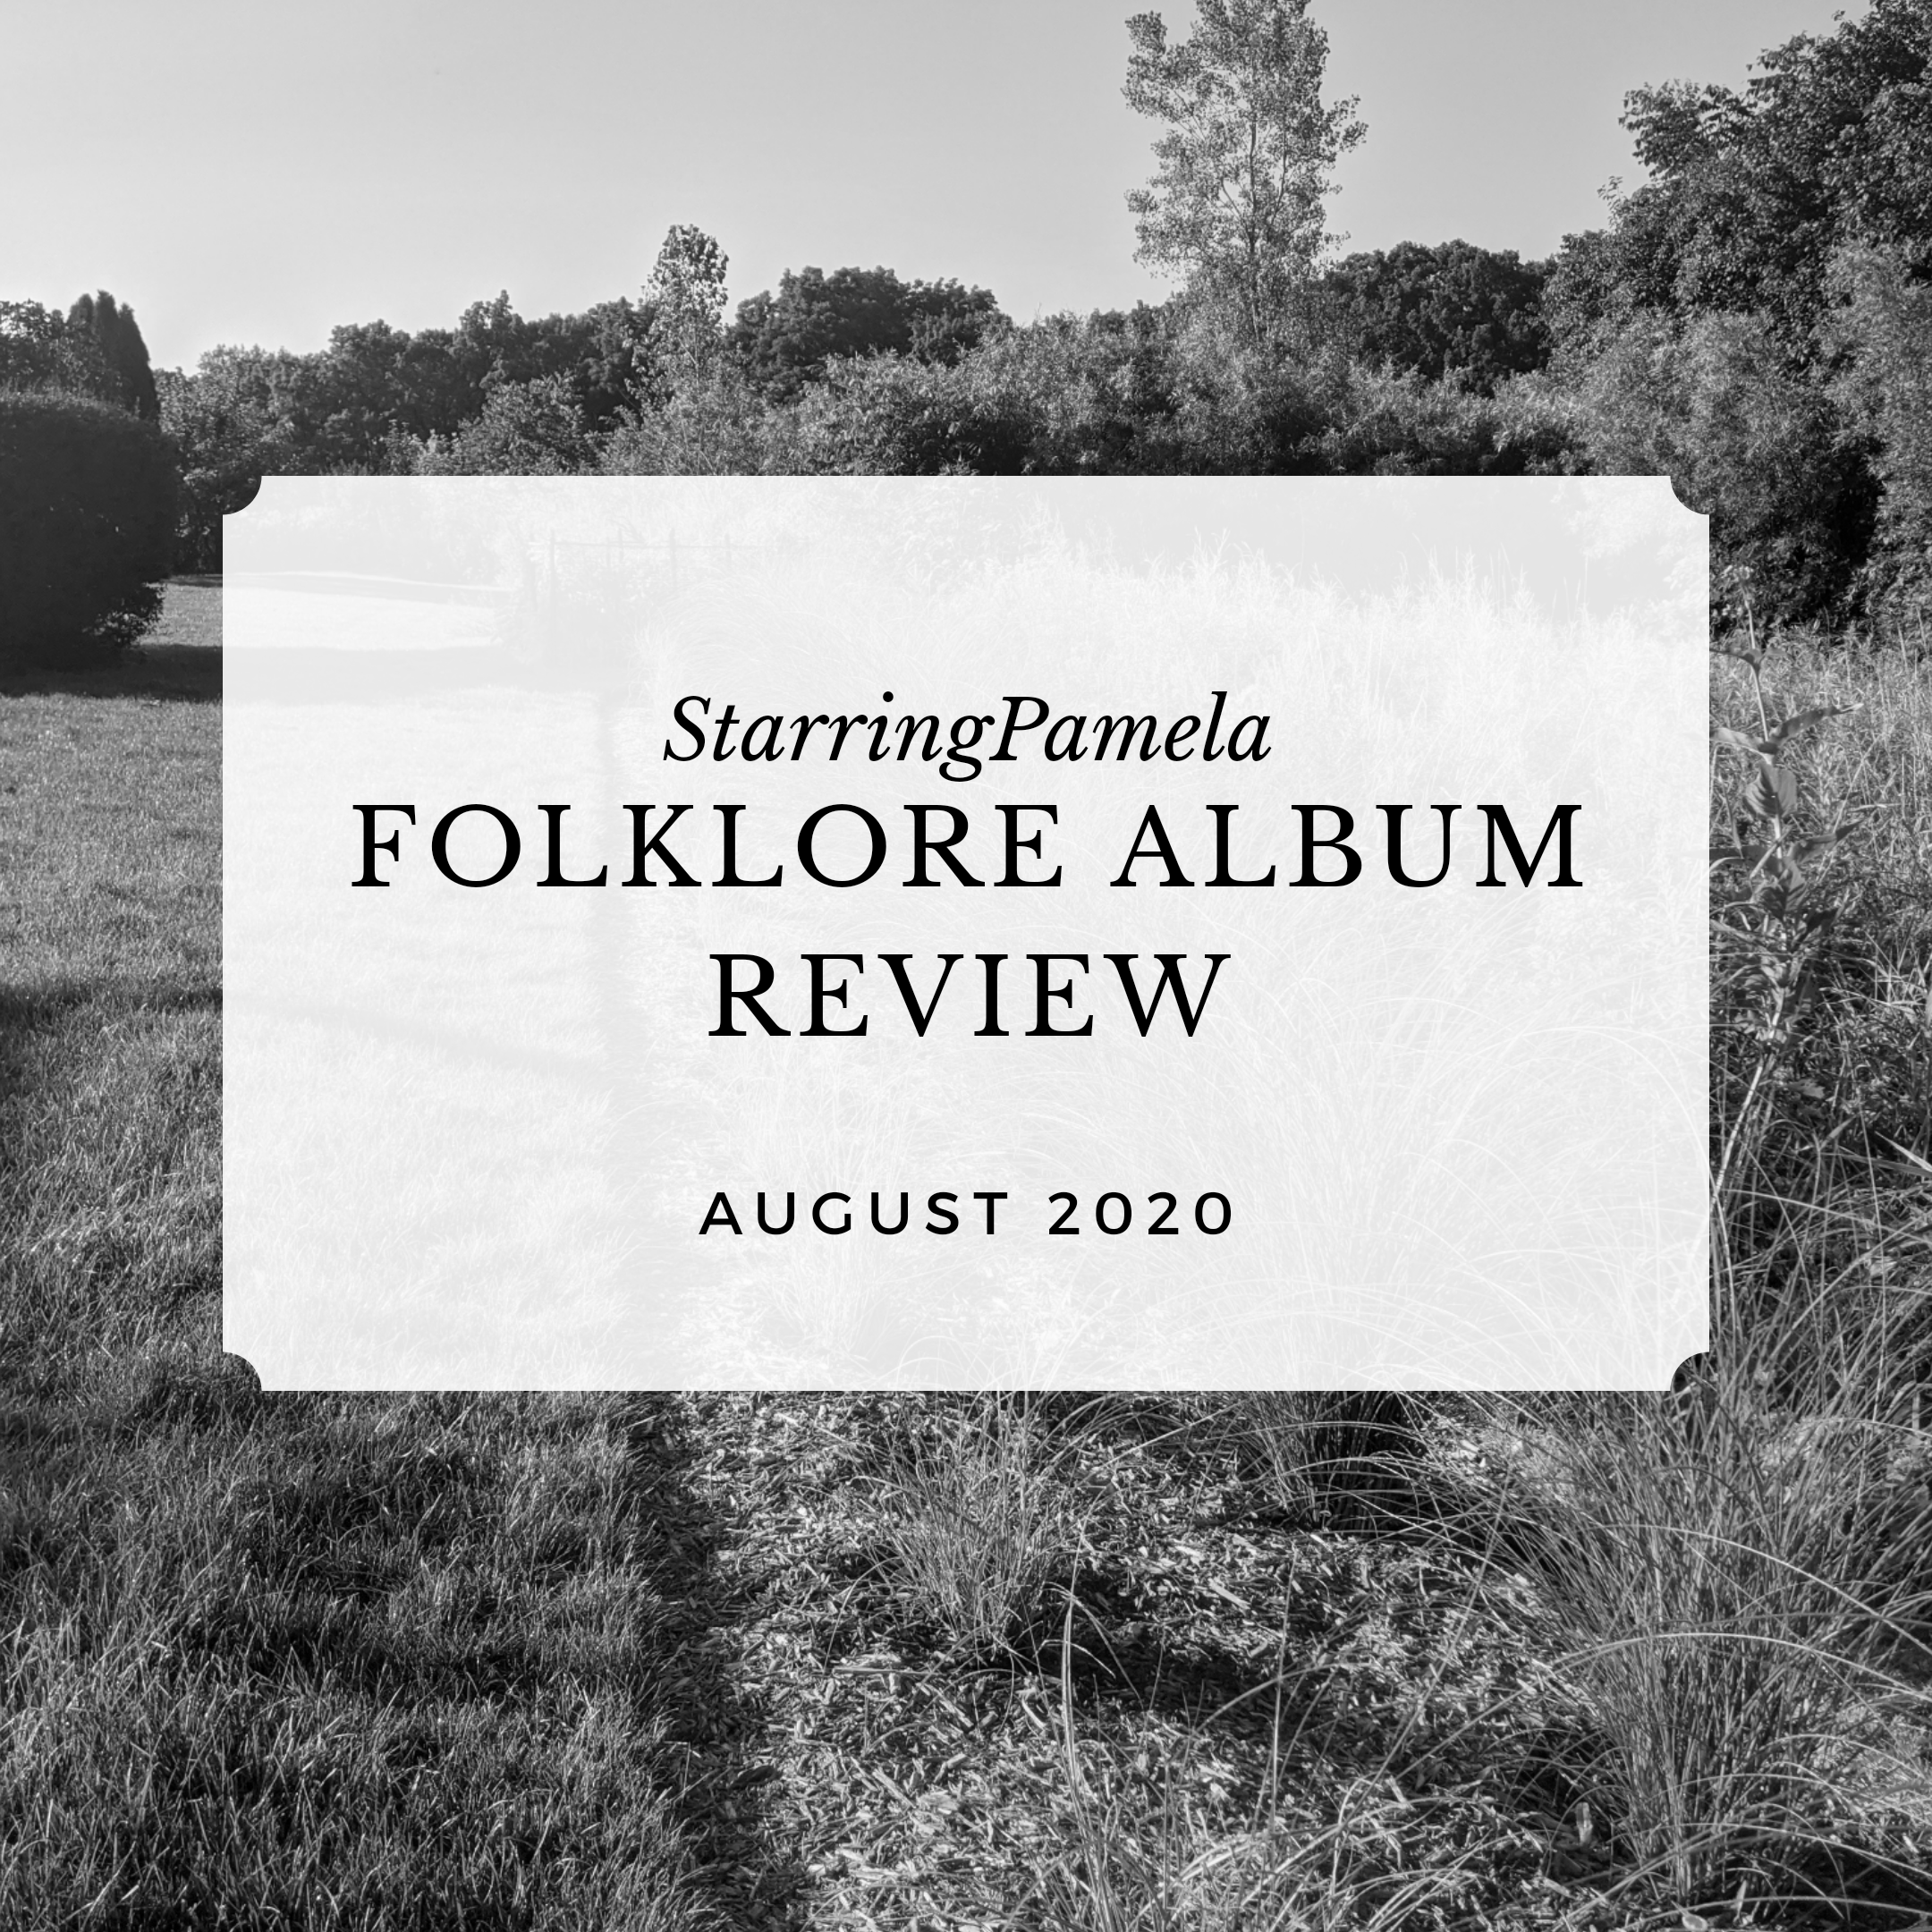 folklore album review featured image